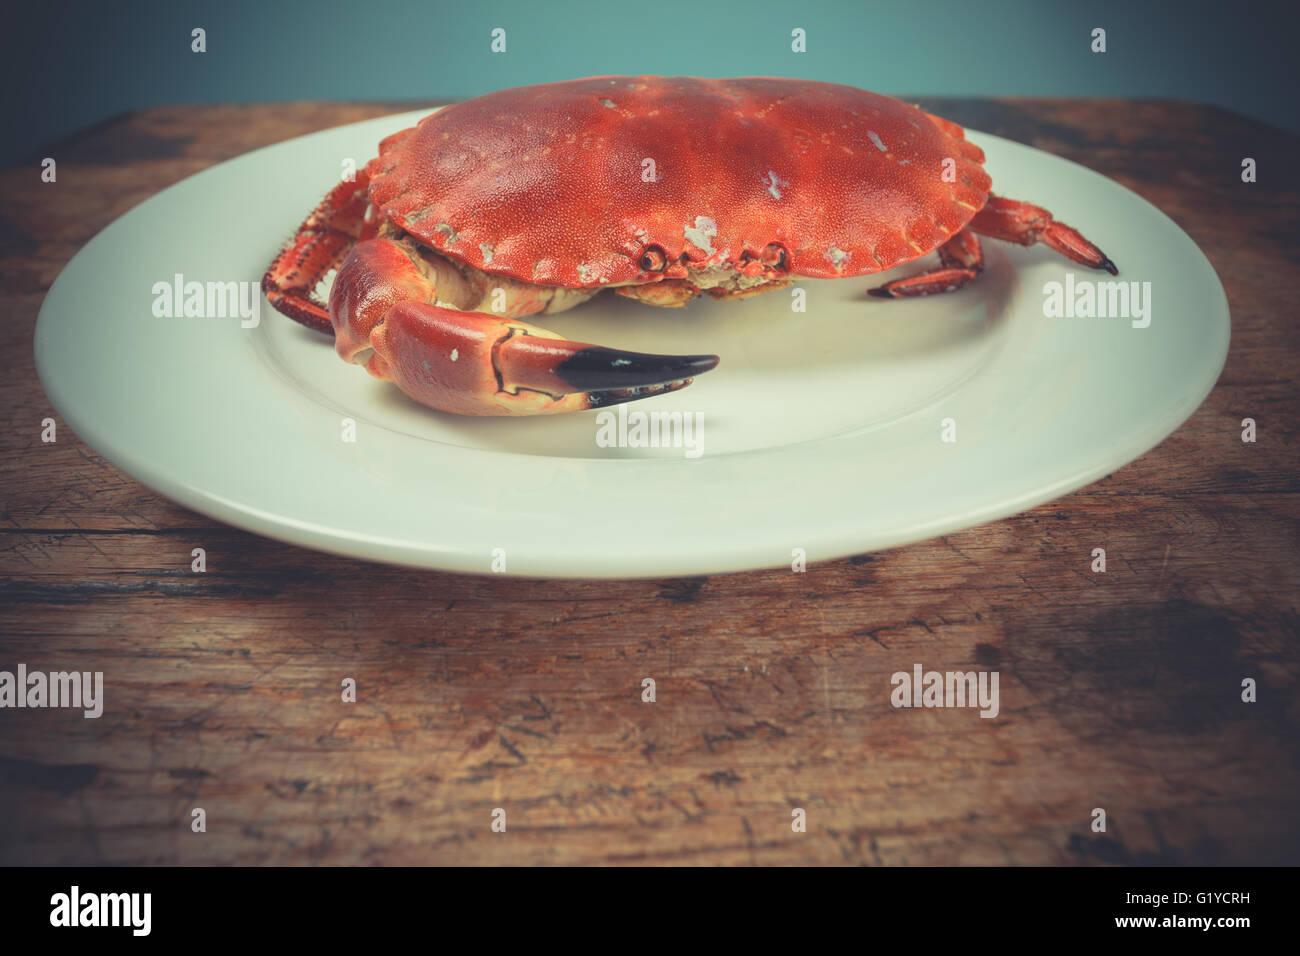 A red crab on a plate - Stock Image